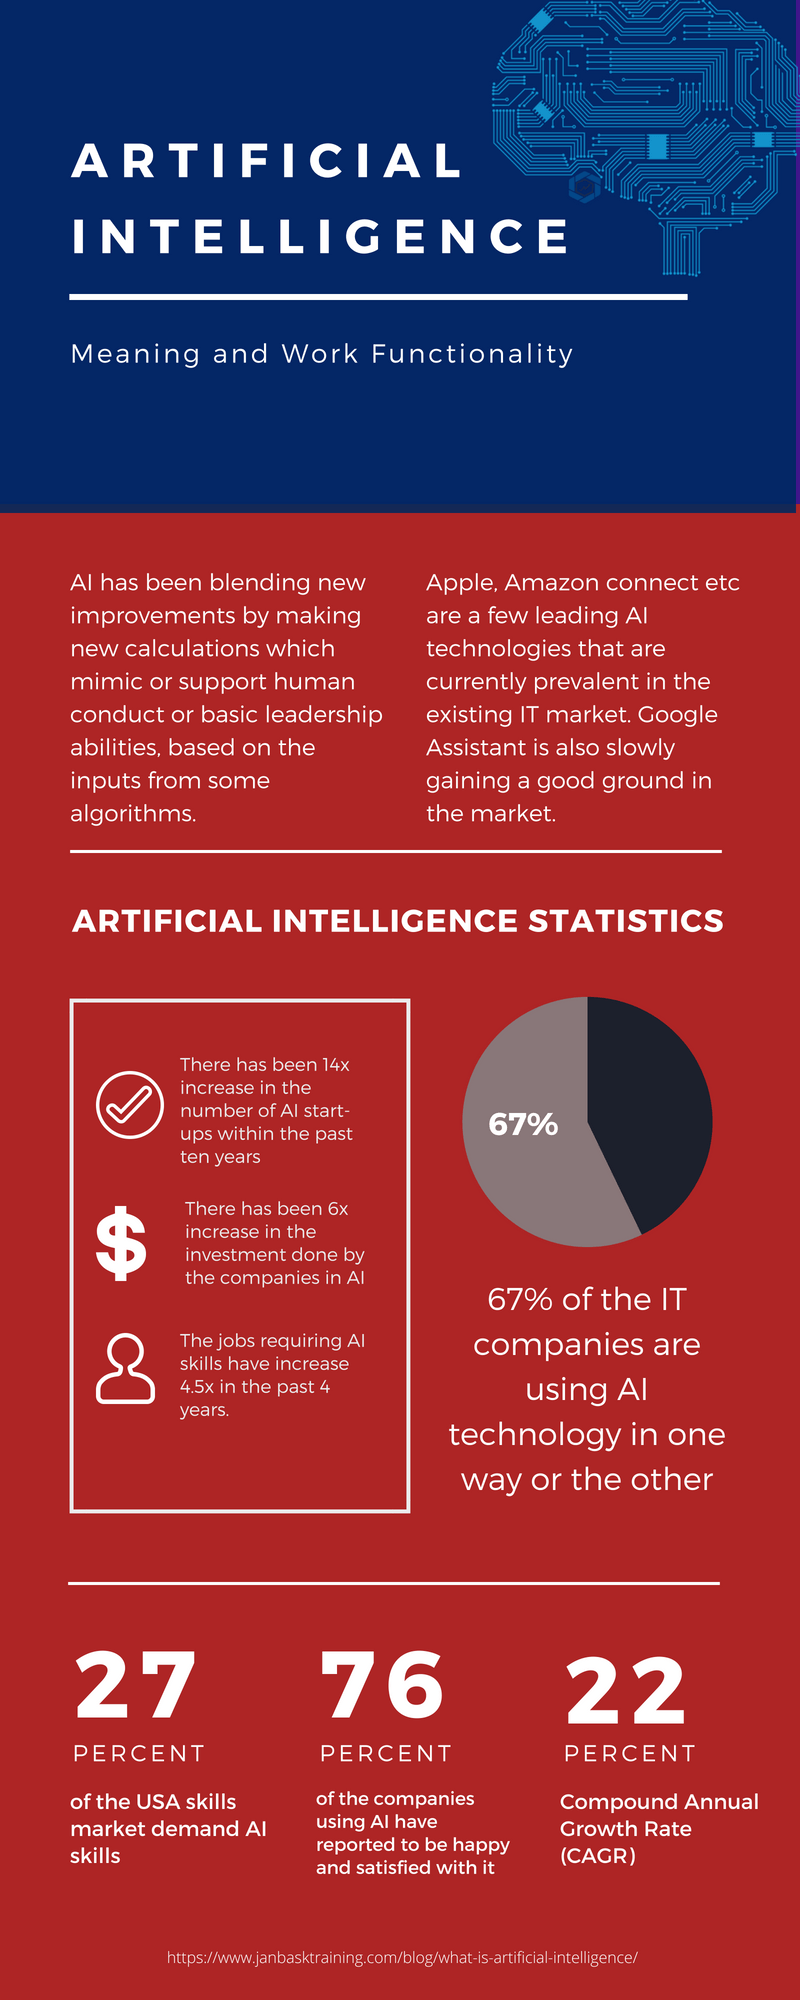 What Is Artificial Intelligence? Infographic